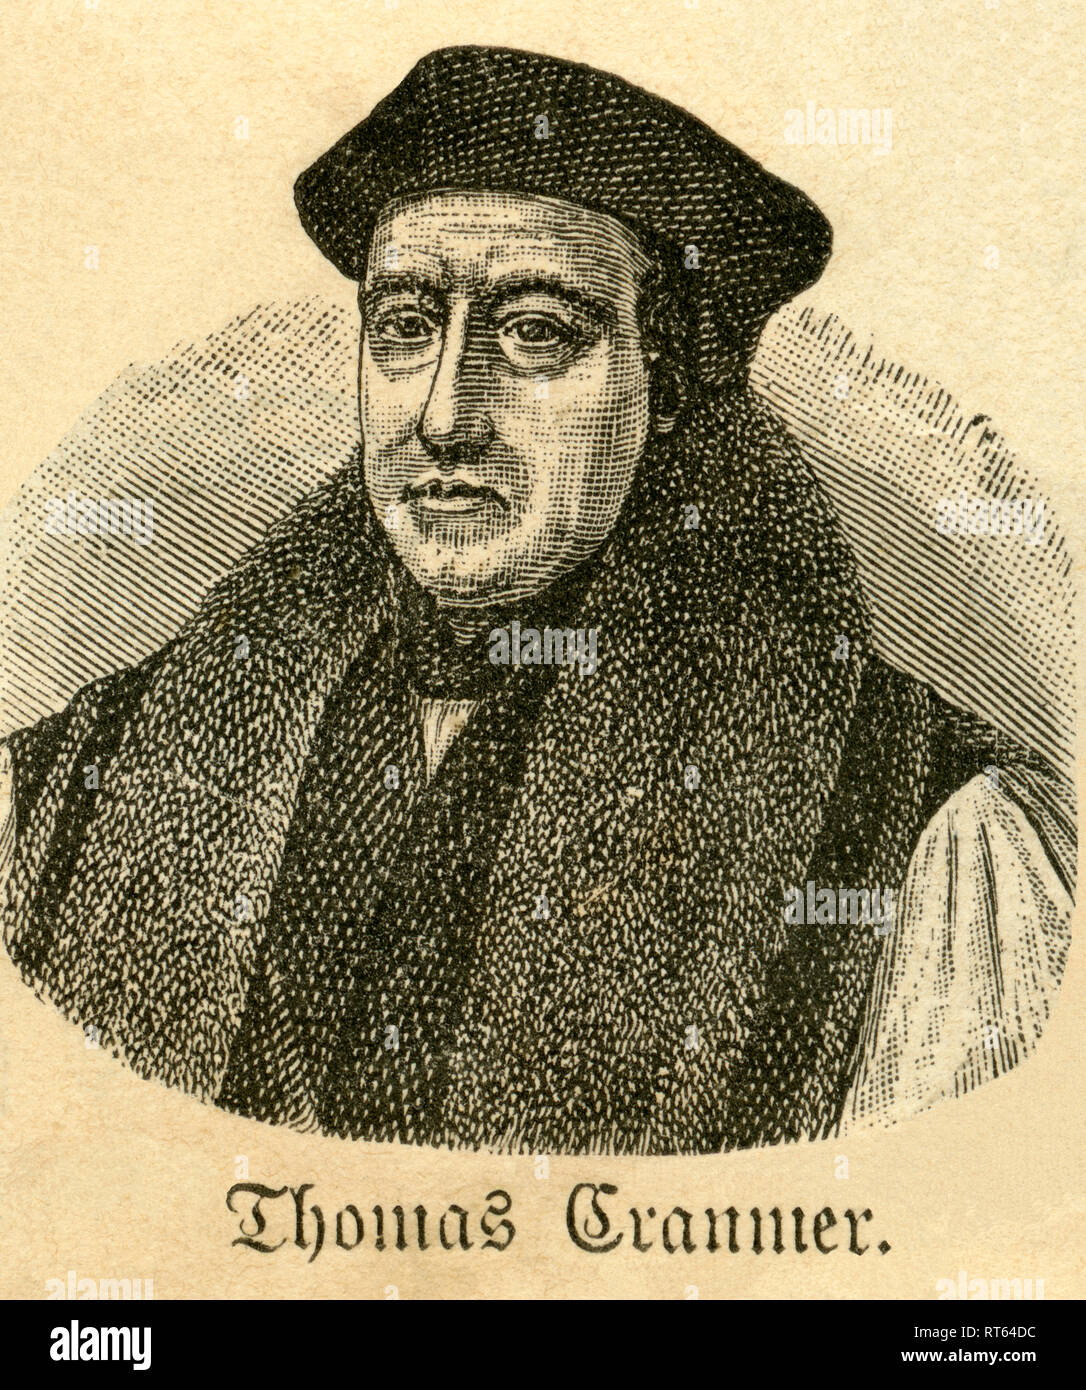 """Thomas Cranmer, Archbishop of Canterbury, English Reformer, illustration from: """"Die Welt in Bildern """" (images of the world), published by Dr. Chr. G. Hottinger in self-publishing, Berlin, Strasbourg, 1881., Additional-Rights-Clearance-Info-Not-Available Stock Photo"""